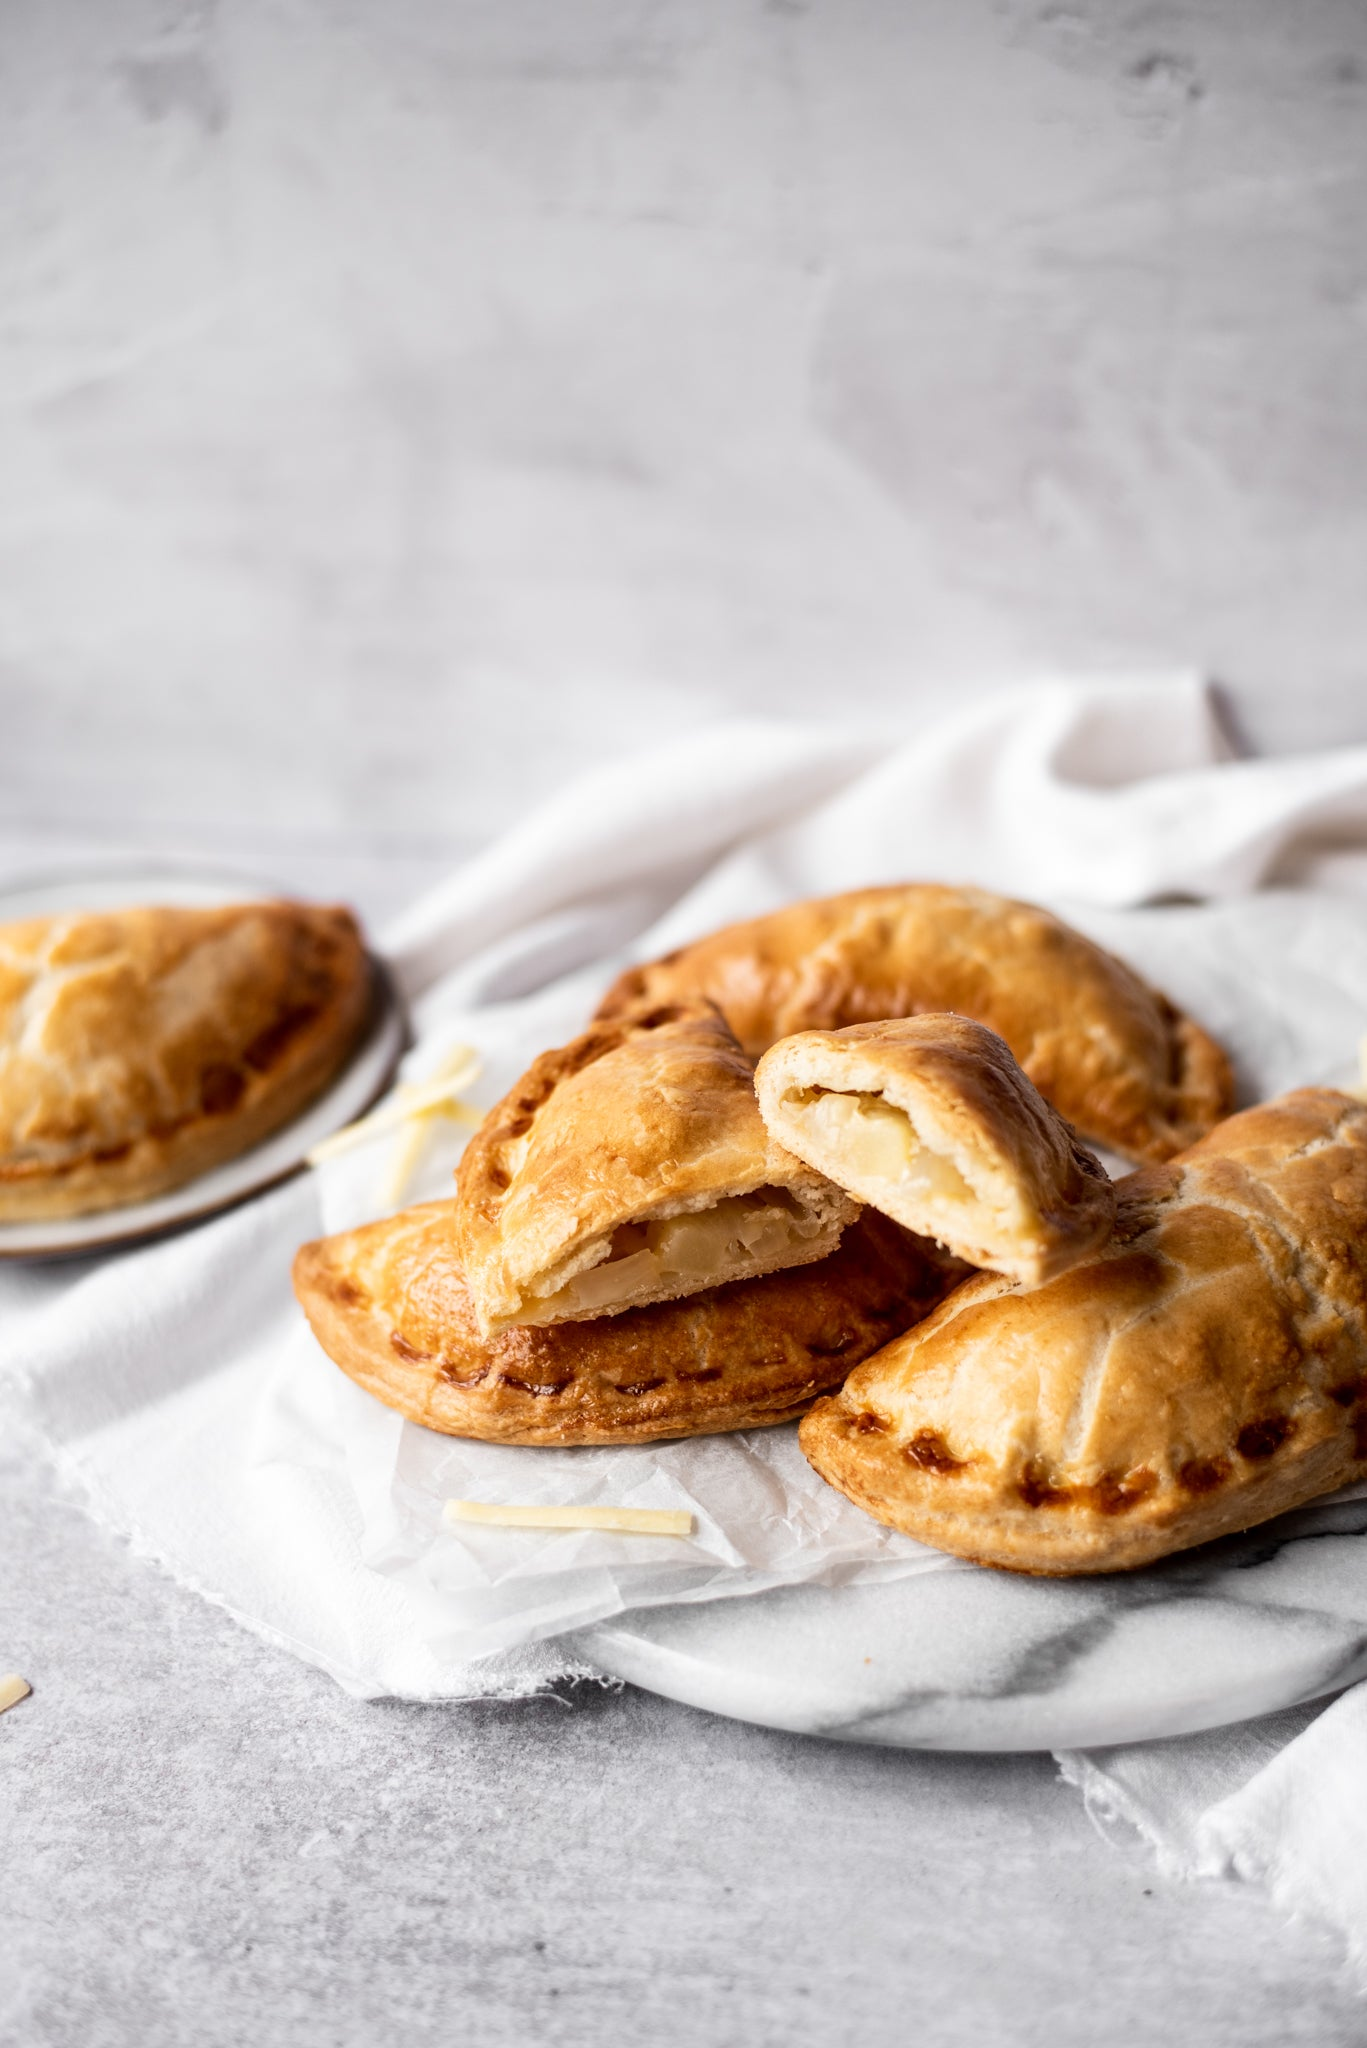 Pastie sliced open on top of pile of cheese and onion pasties